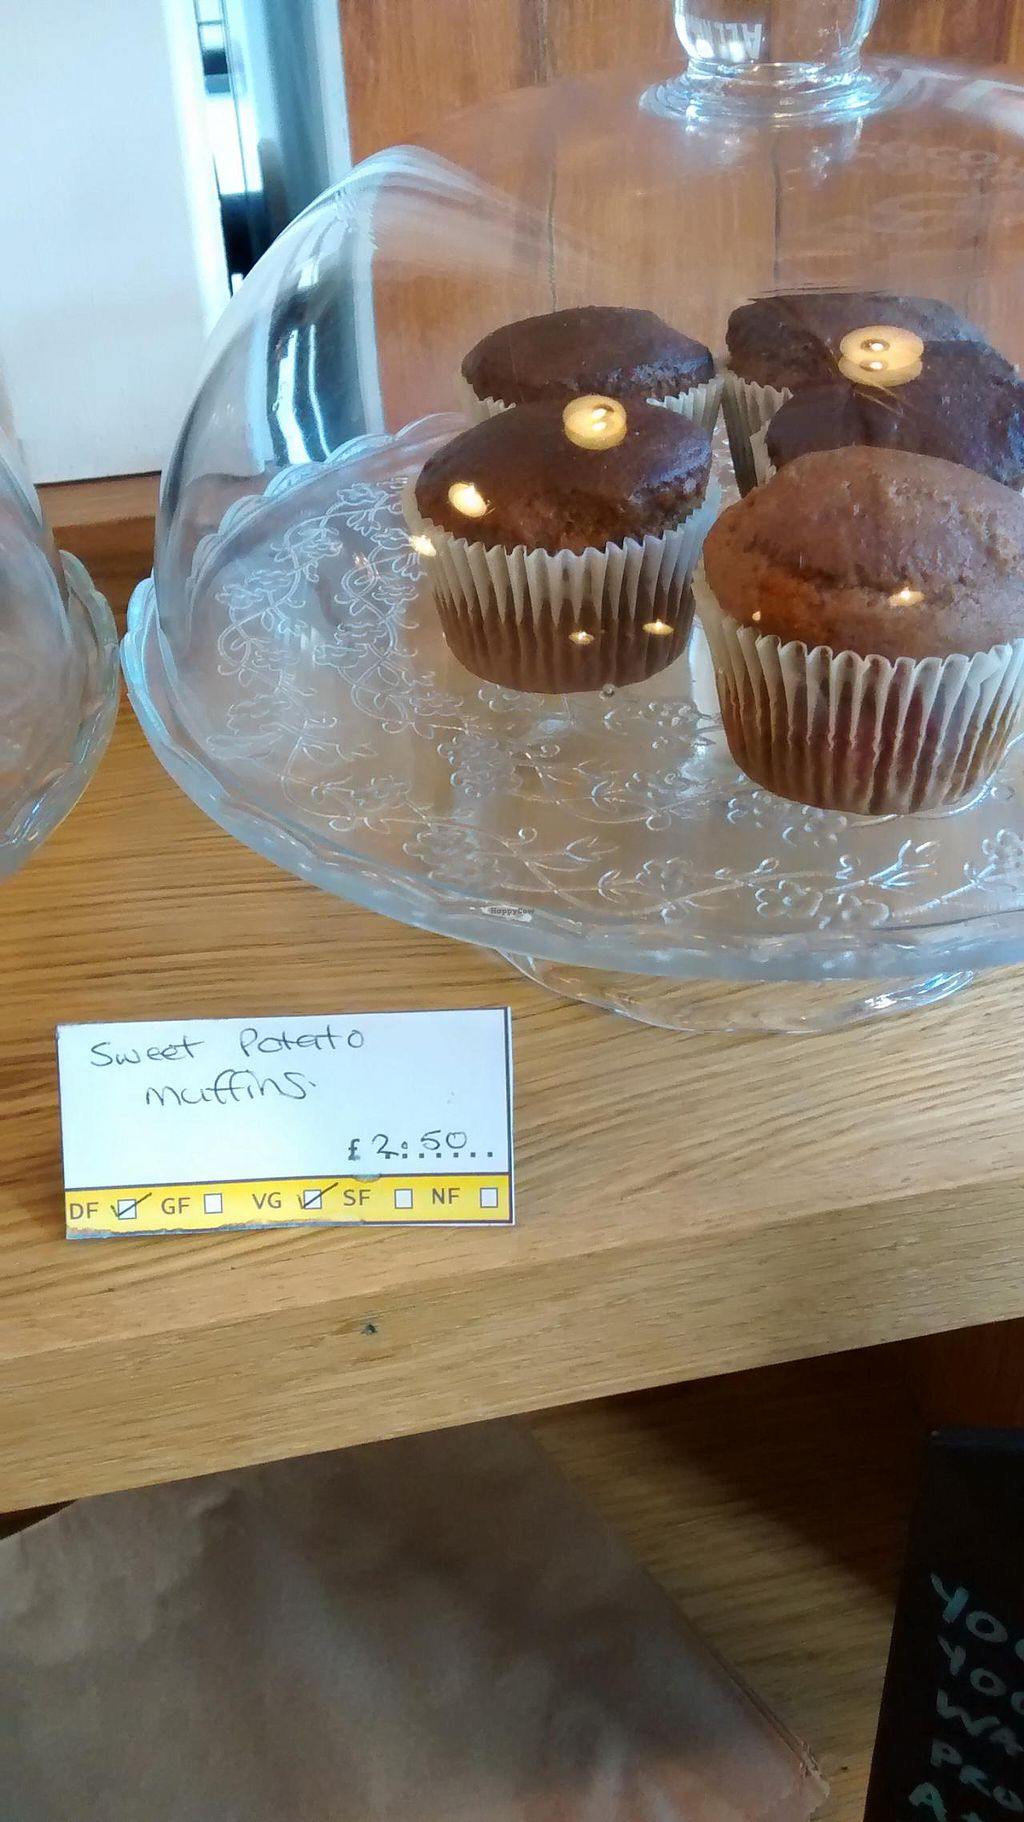 """Photo of CLOSED: Meadowlark No. 39  by <a href=""""/members/profile/craigmc"""">craigmc</a> <br/>Sweet potato muffins <br/> April 17, 2014  - <a href='/contact/abuse/image/46150/67782'>Report</a>"""